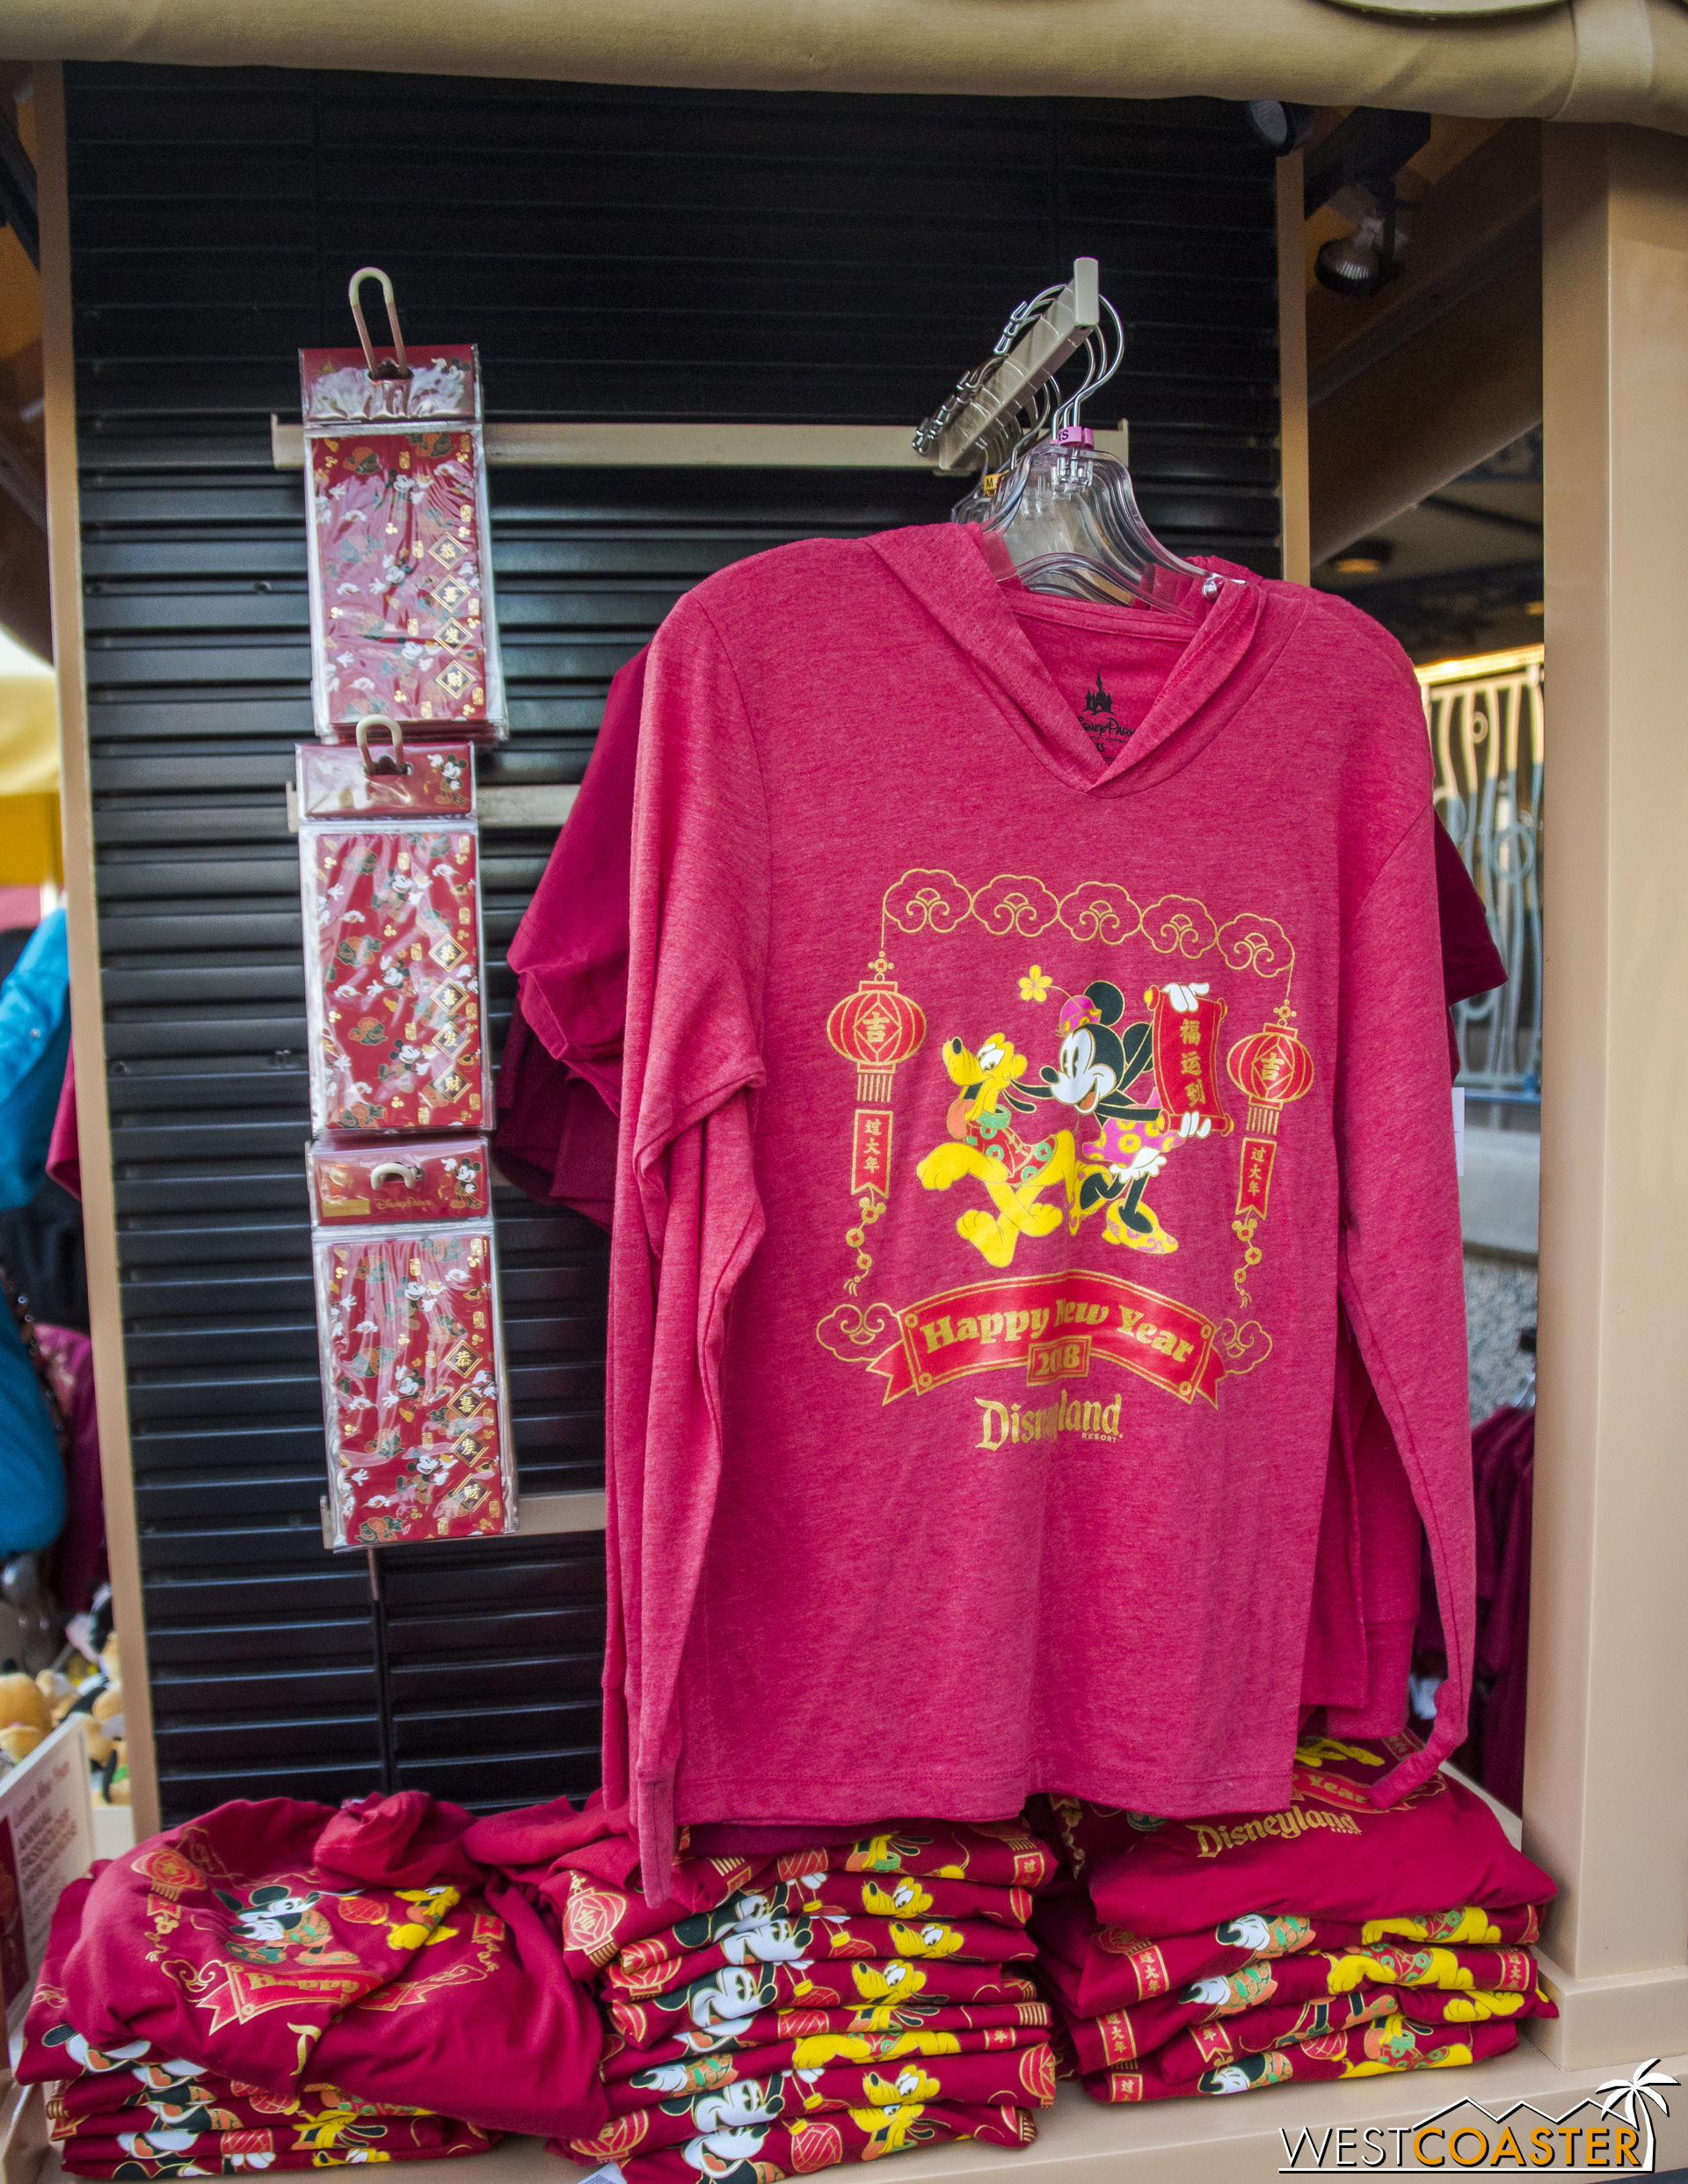 A merch stand over by The Little Mermaid offers a variety of Lunar New Year goods.